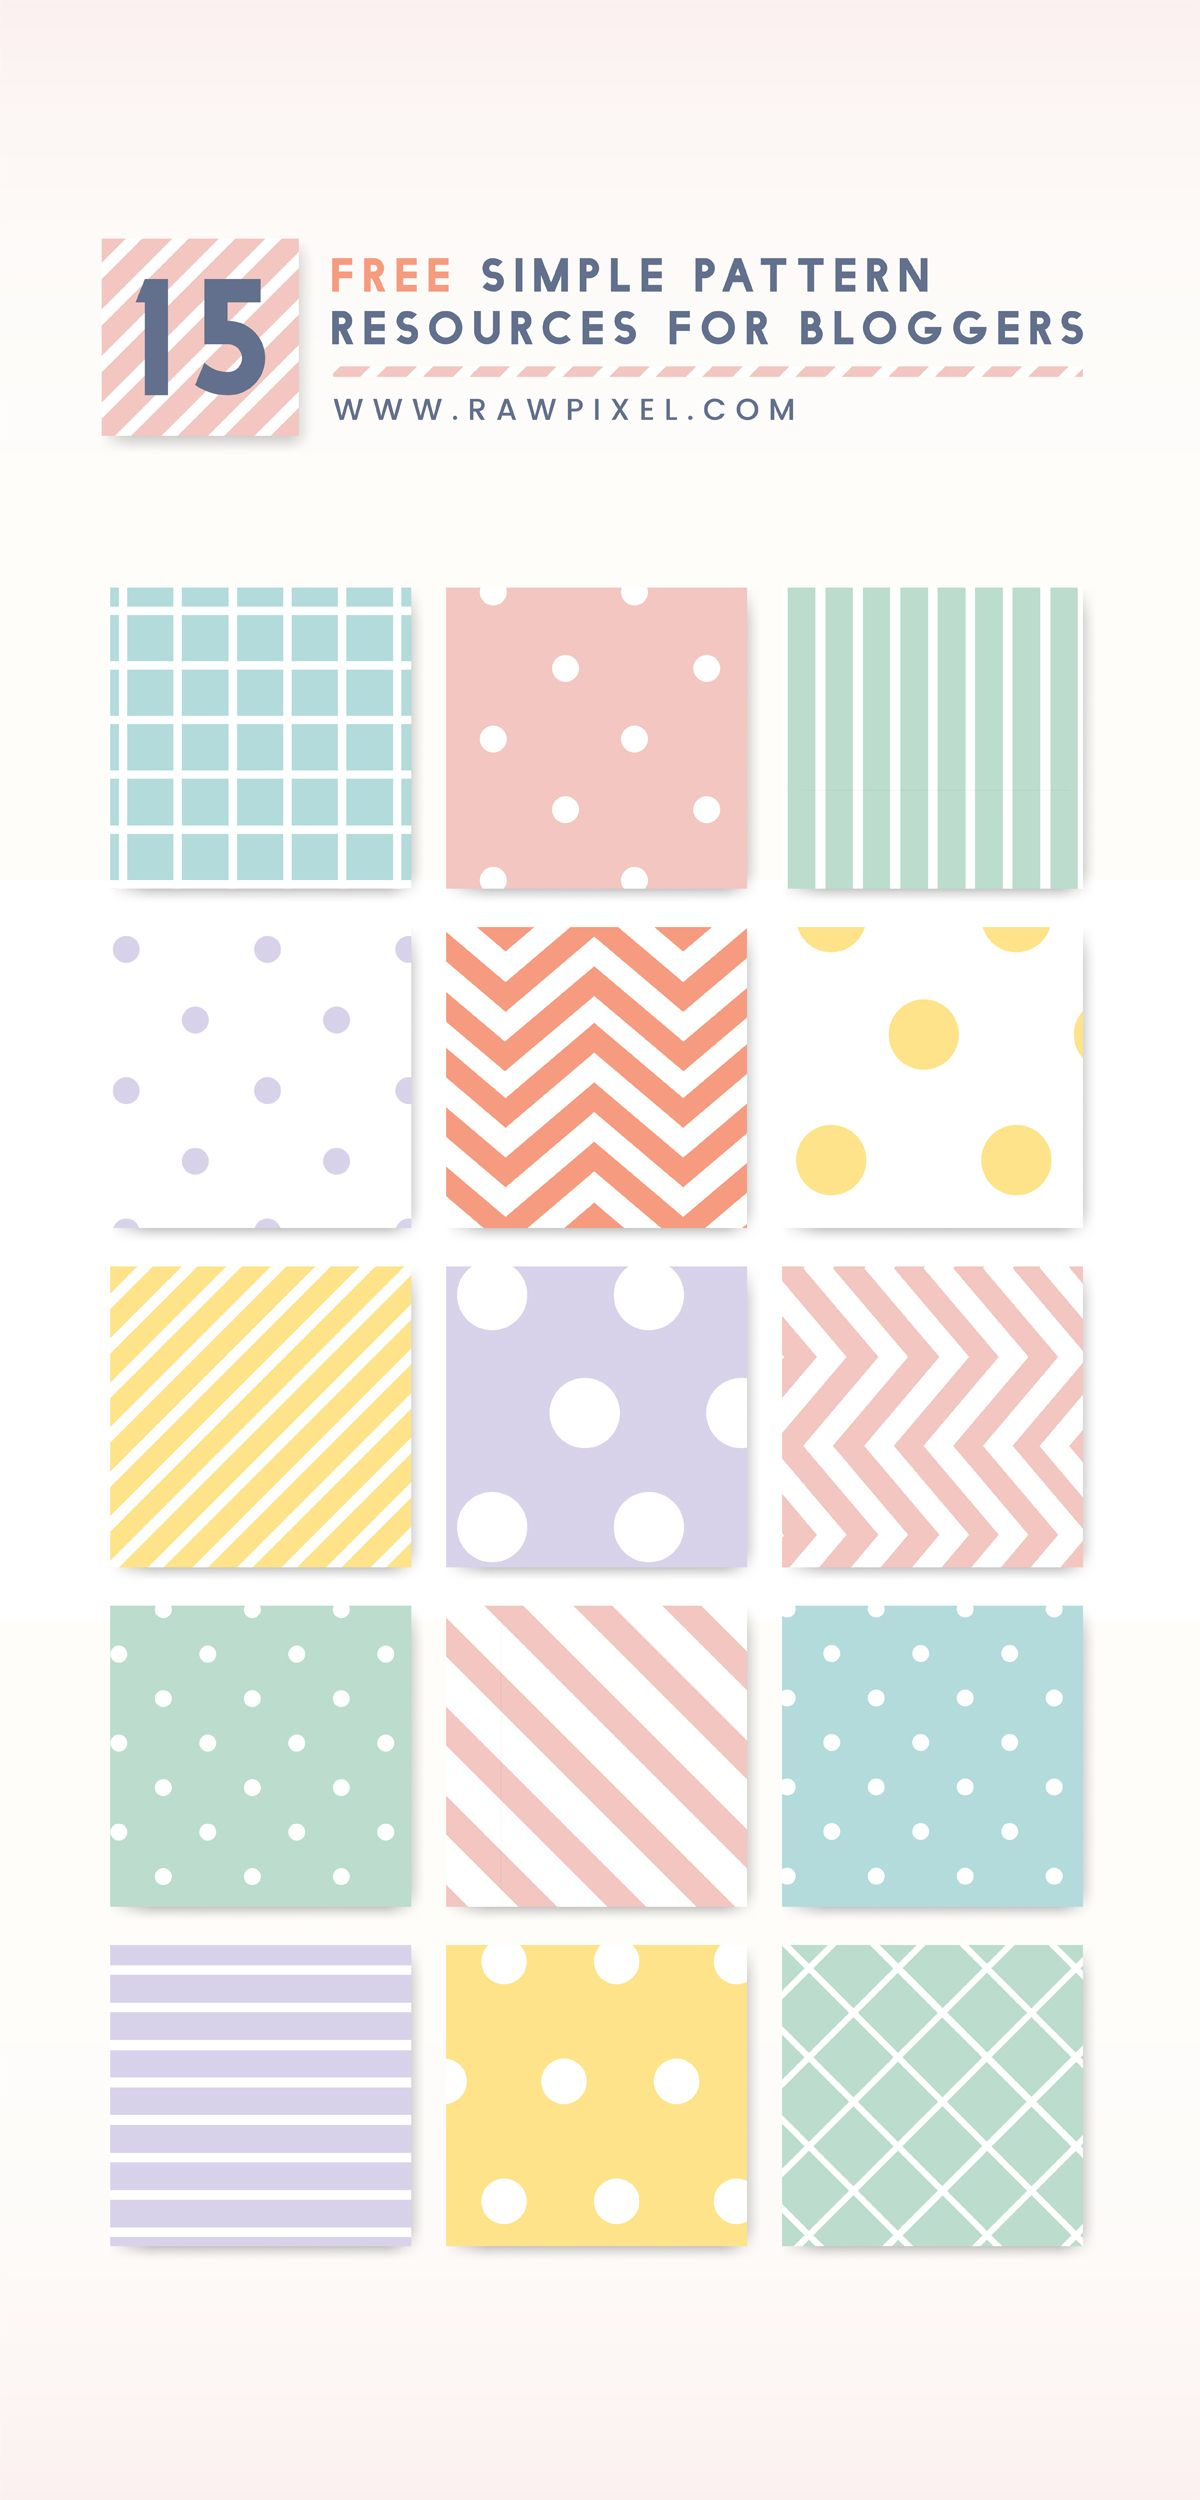 Grab Free Vectors Of Minimal Pattern Set In Pastel At Rawpixel Com